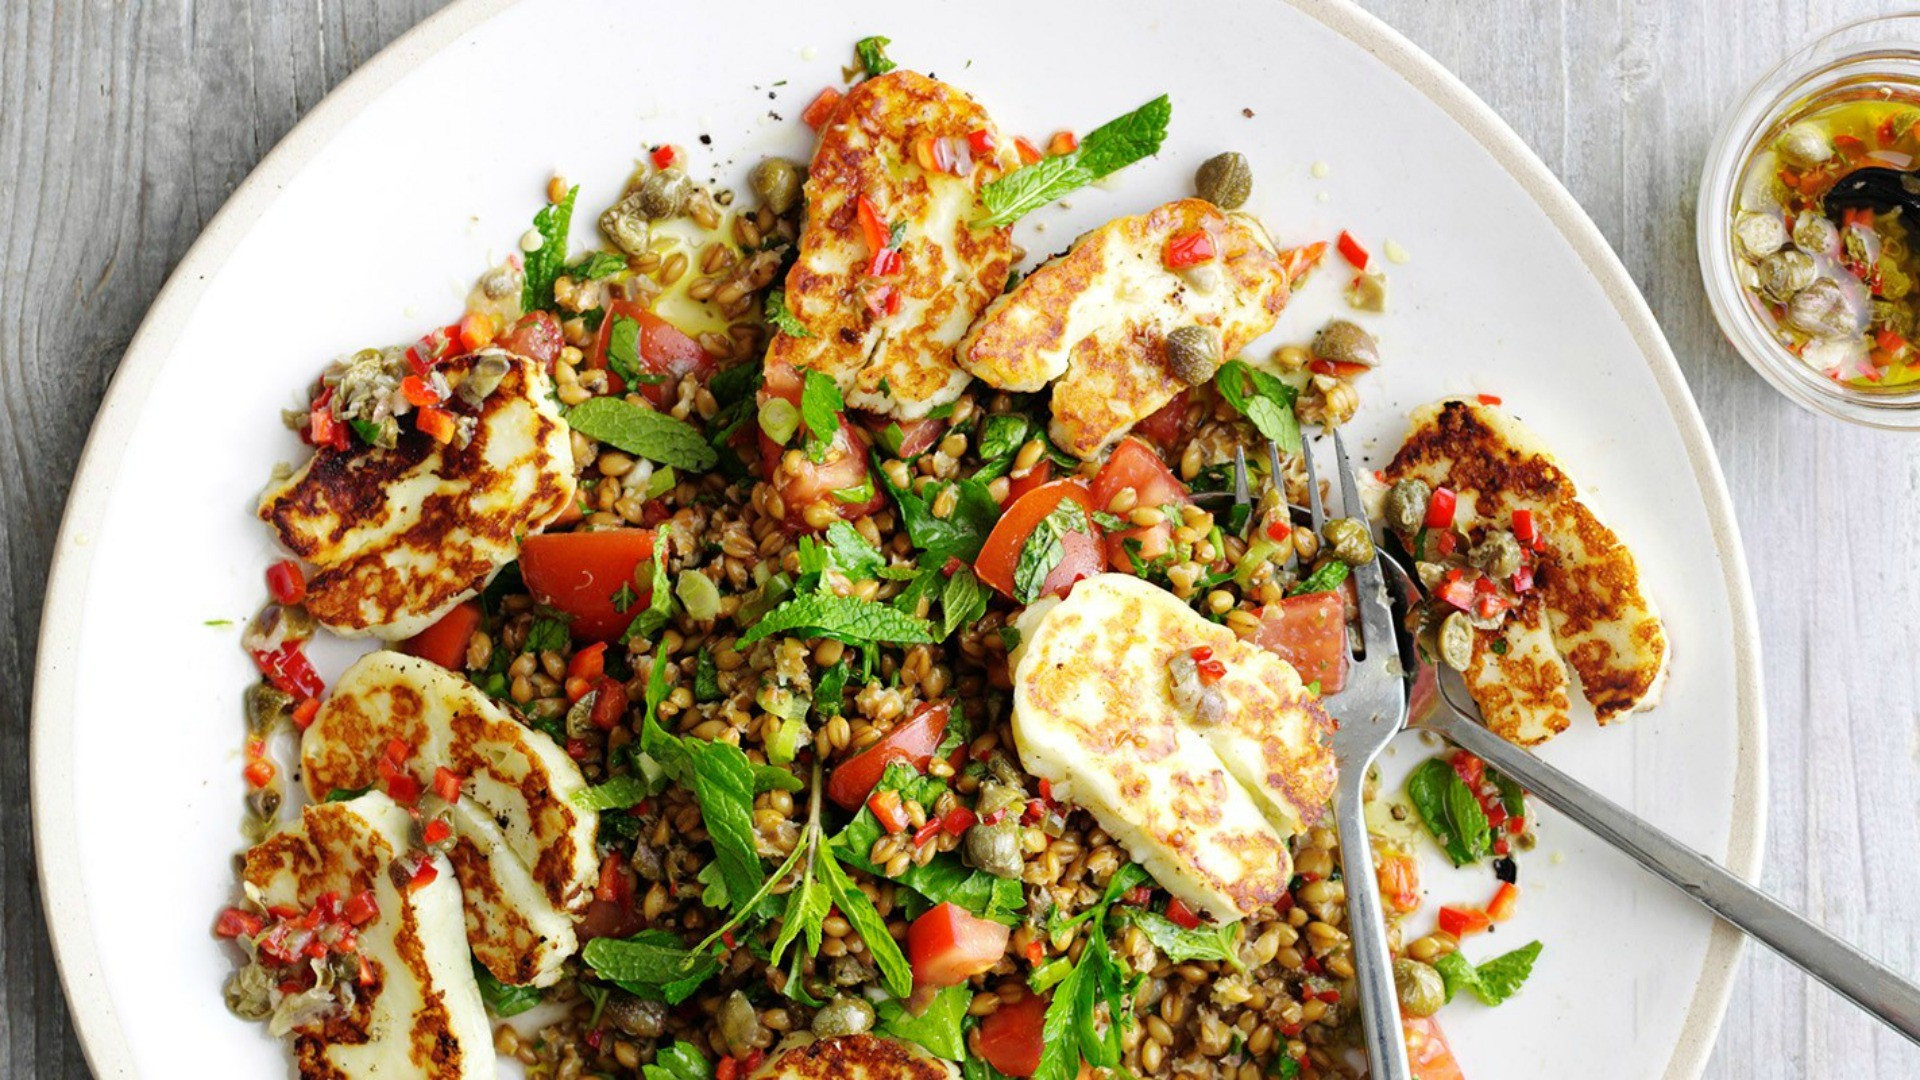 This halloumi salad also makes a great lunch